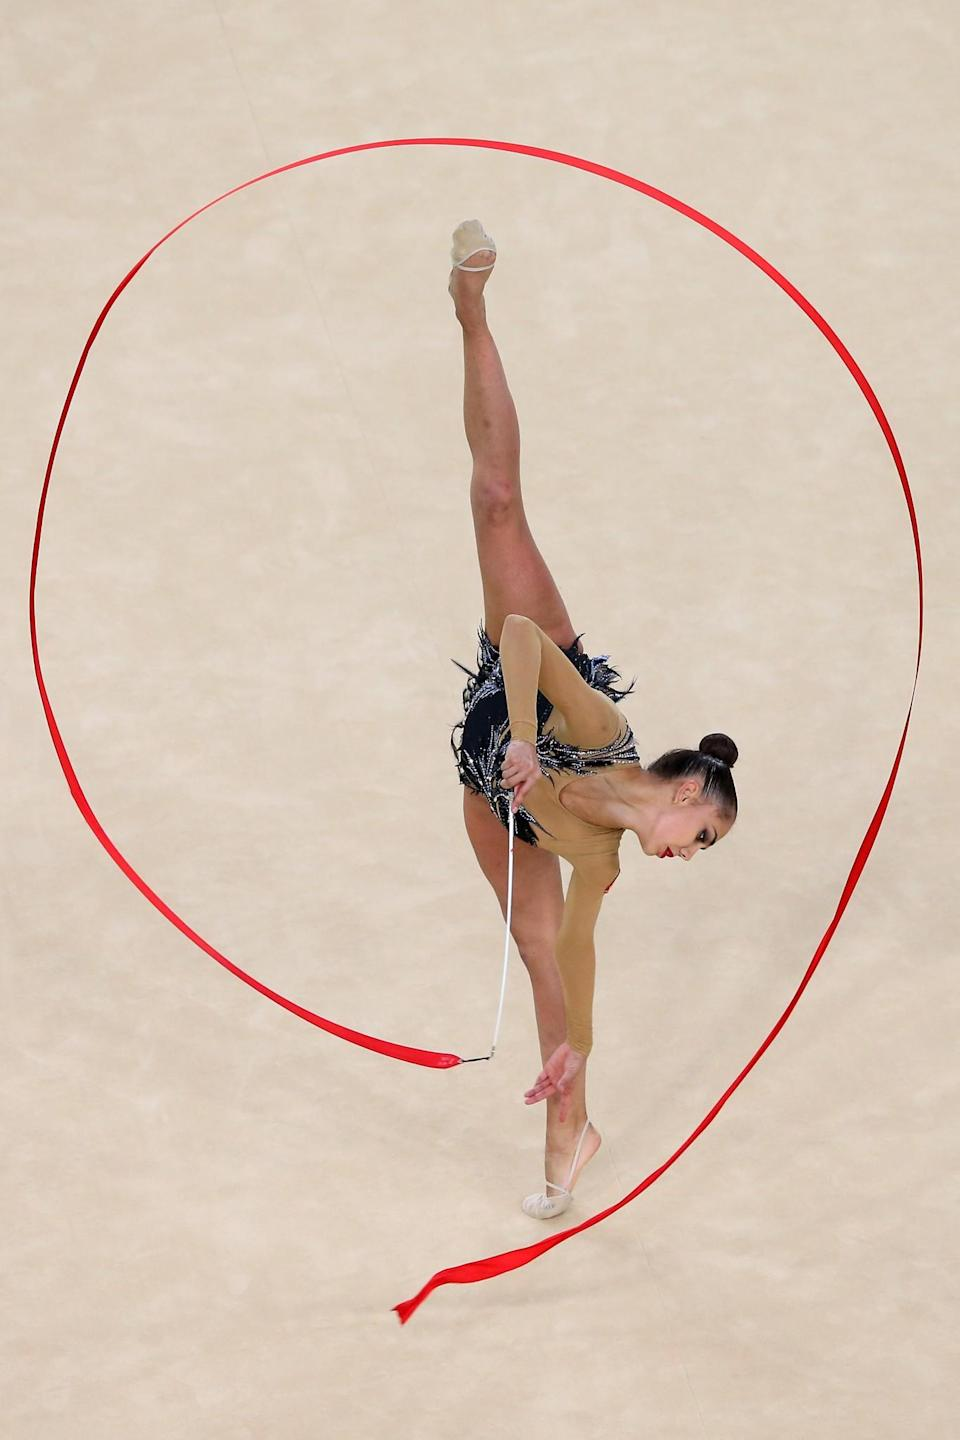 <p>Margarita Mamun of Russia competes during the Women's Individual All-Around Rhythmic Gymnastics Final on Day 15 of the Rio 2016 Olympic Games at the Rio Olympic Arena on August 20, 2016 in Rio de Janeiro, Brazil. (Photo by Alex Livesey/Getty Images) </p>